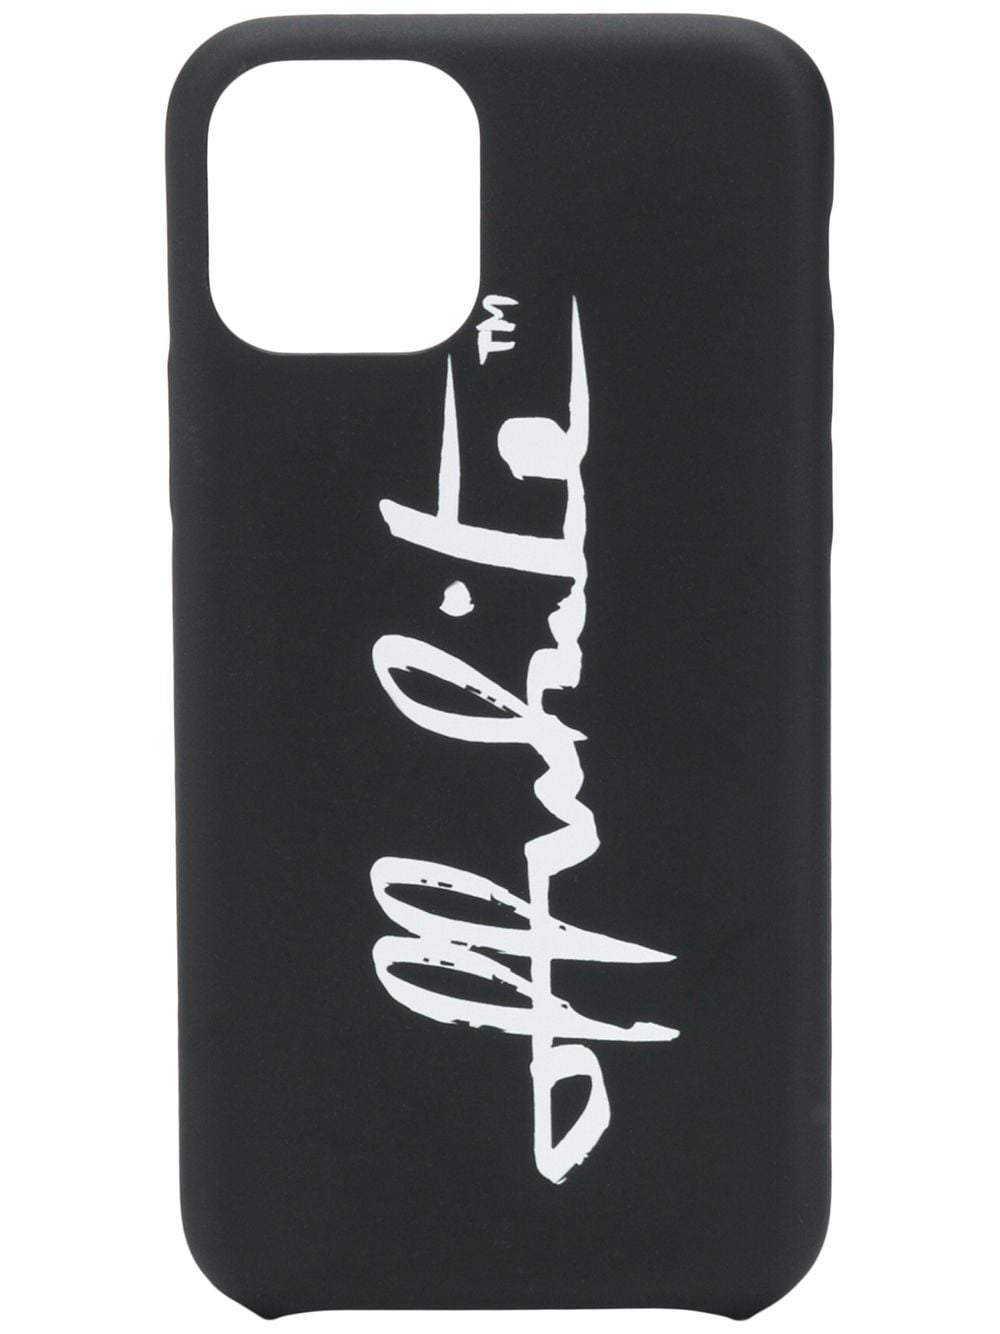 OFF-WHITE logo iPhone 11 Pro case black/white